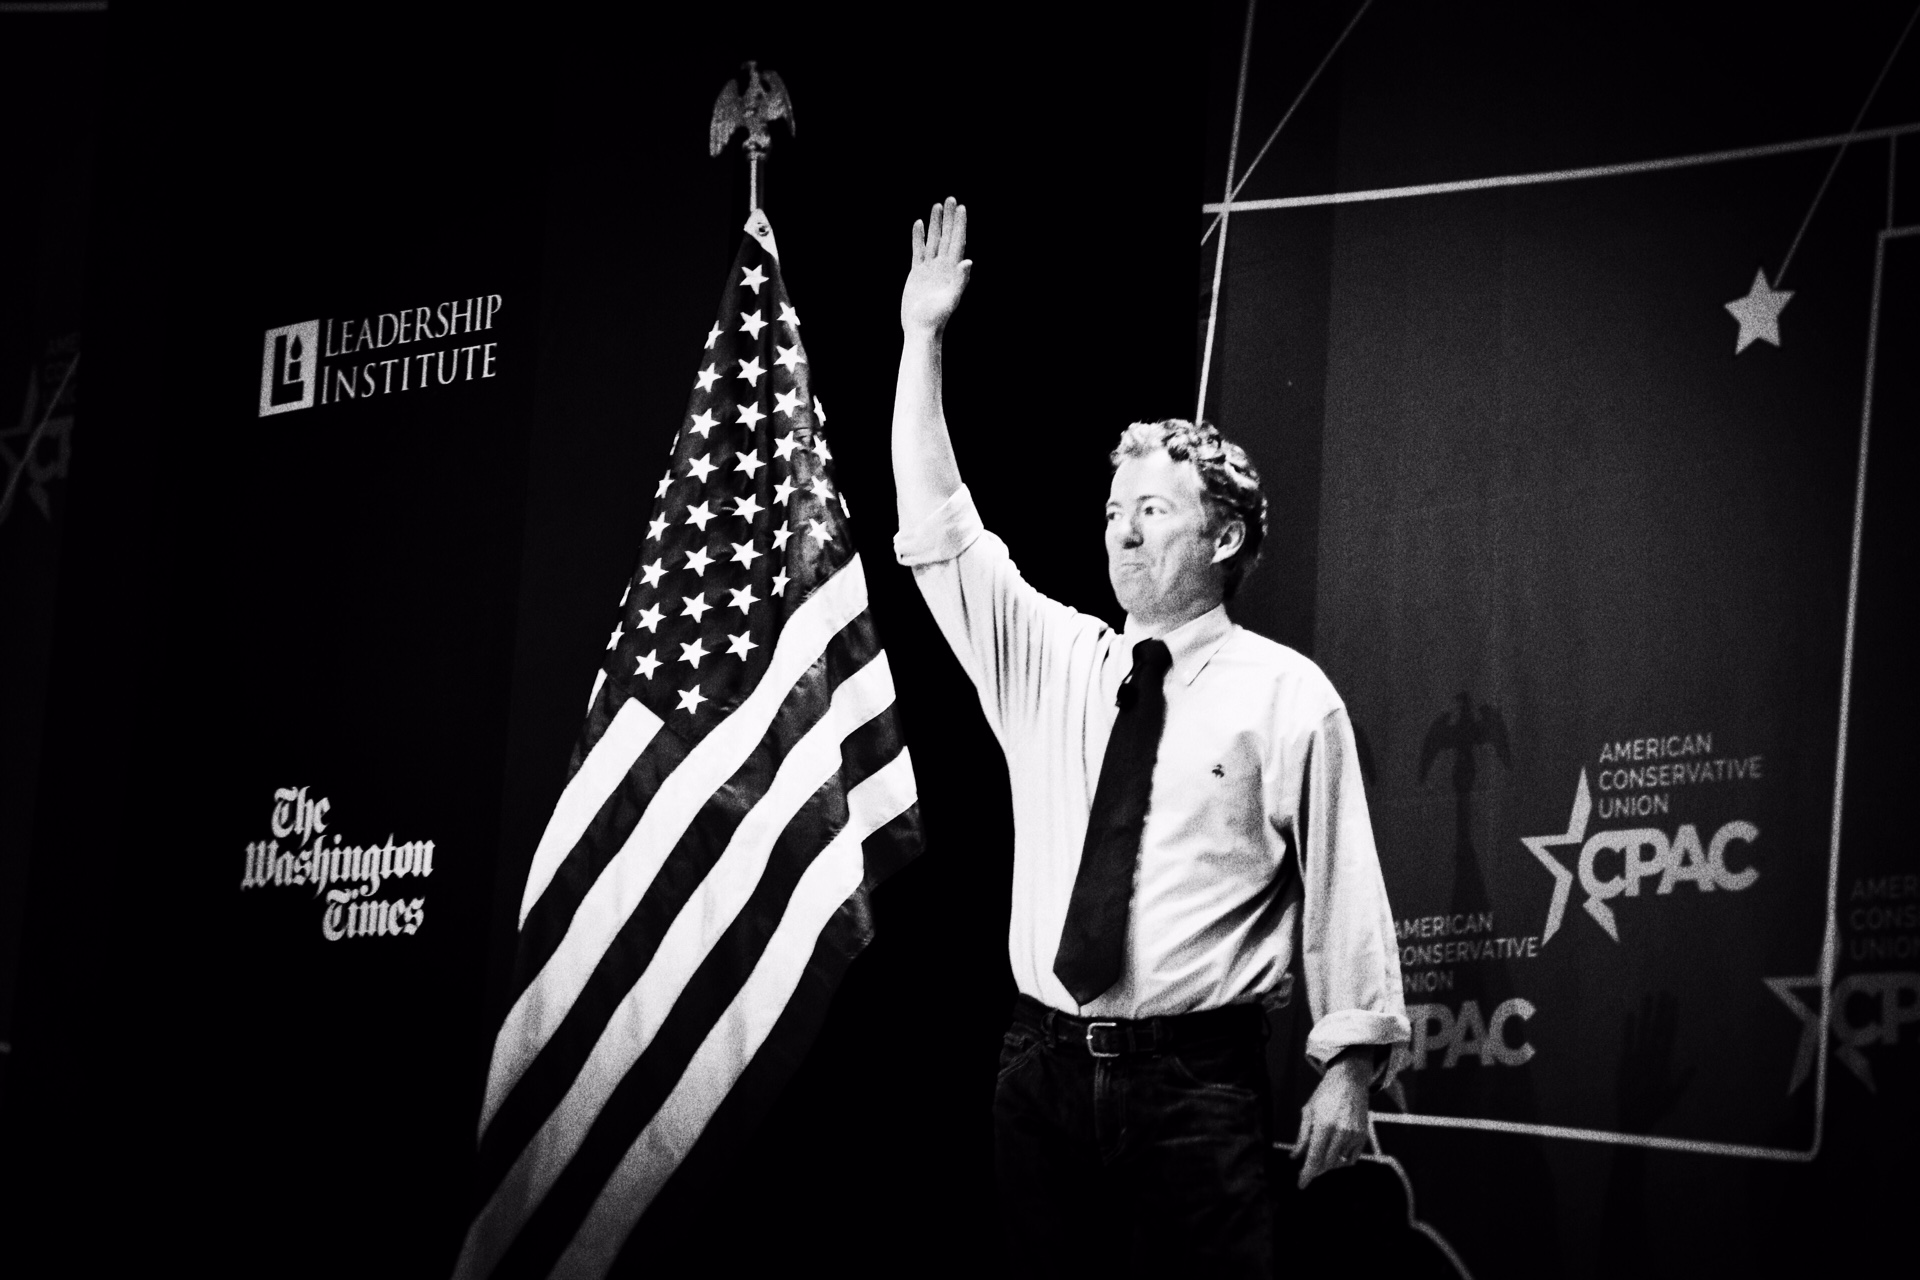 Rand Paul speaks at CPAC in National Harbor, Md. on Feb. 27, 2015.